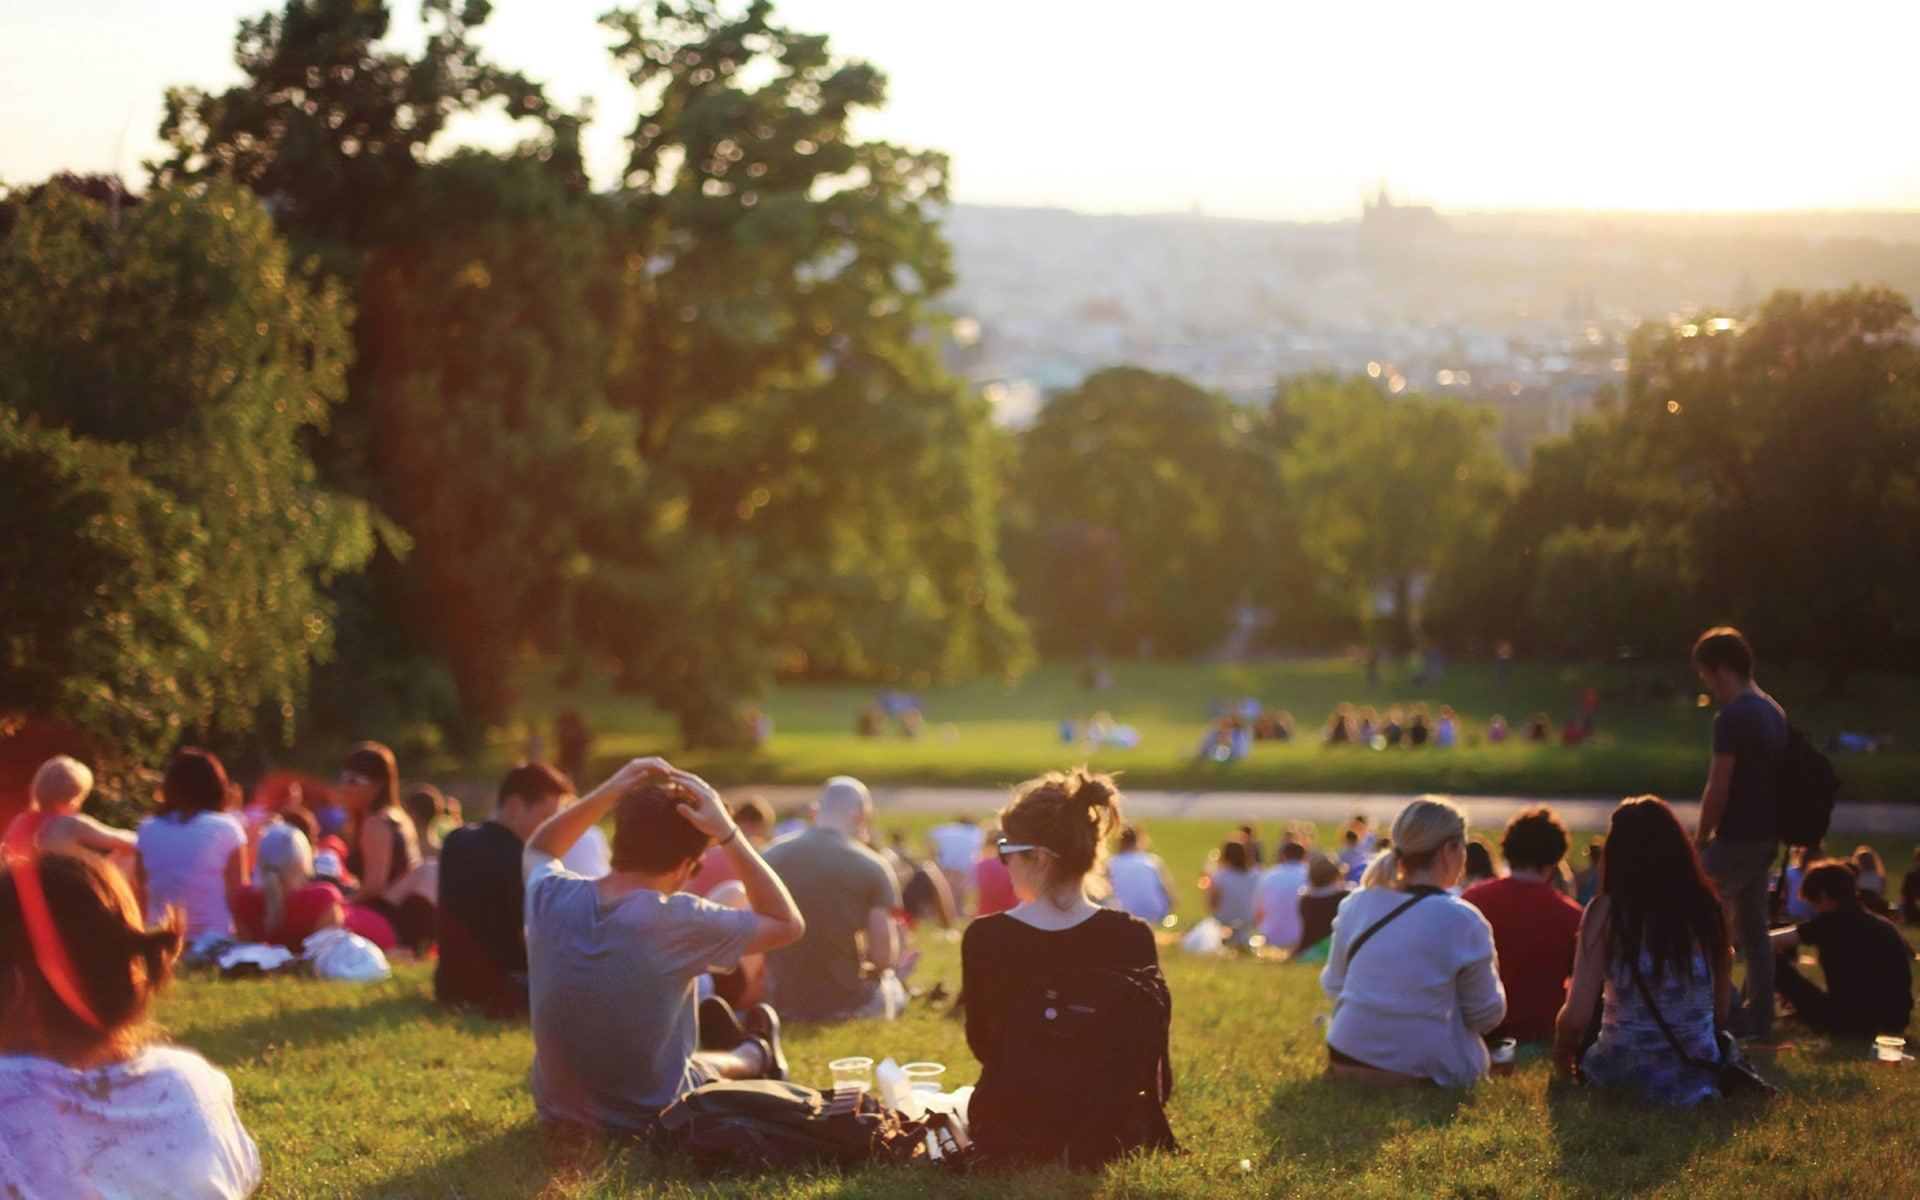 People sitting on grass